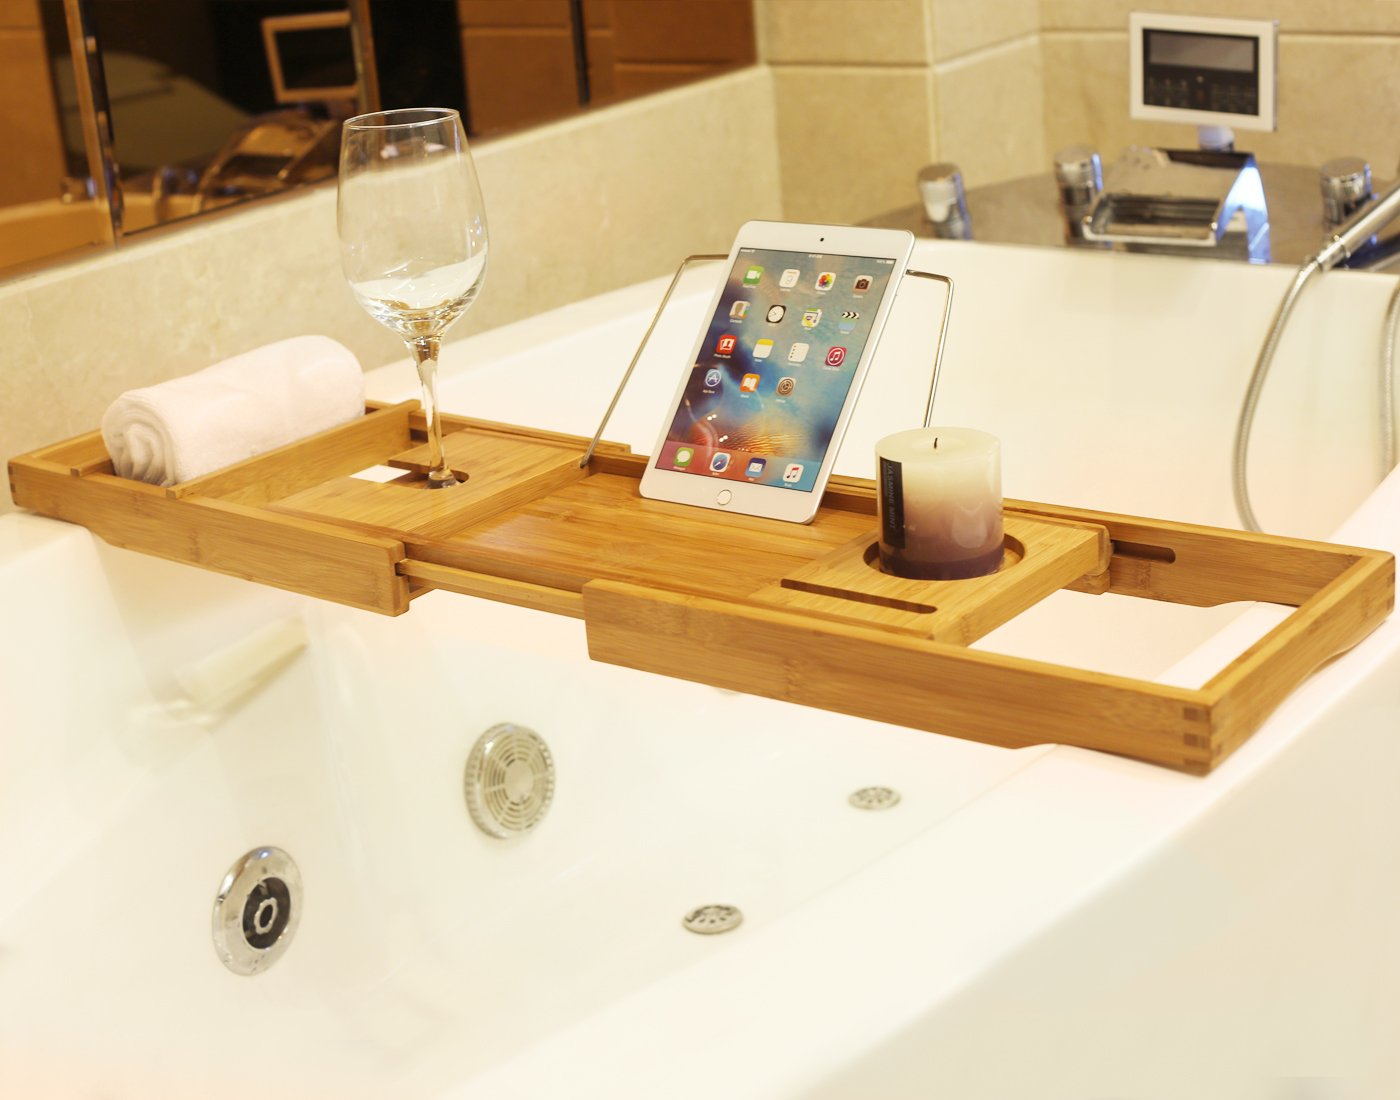 BAMBUROBA Bamboo Bathtub Caddy Tray Bathroom Organizer With Expandable  Sides Holder For Book Glass Towel   M017 U003c Bathtub Trays U003c Home U0026 Kitchen    TIBS